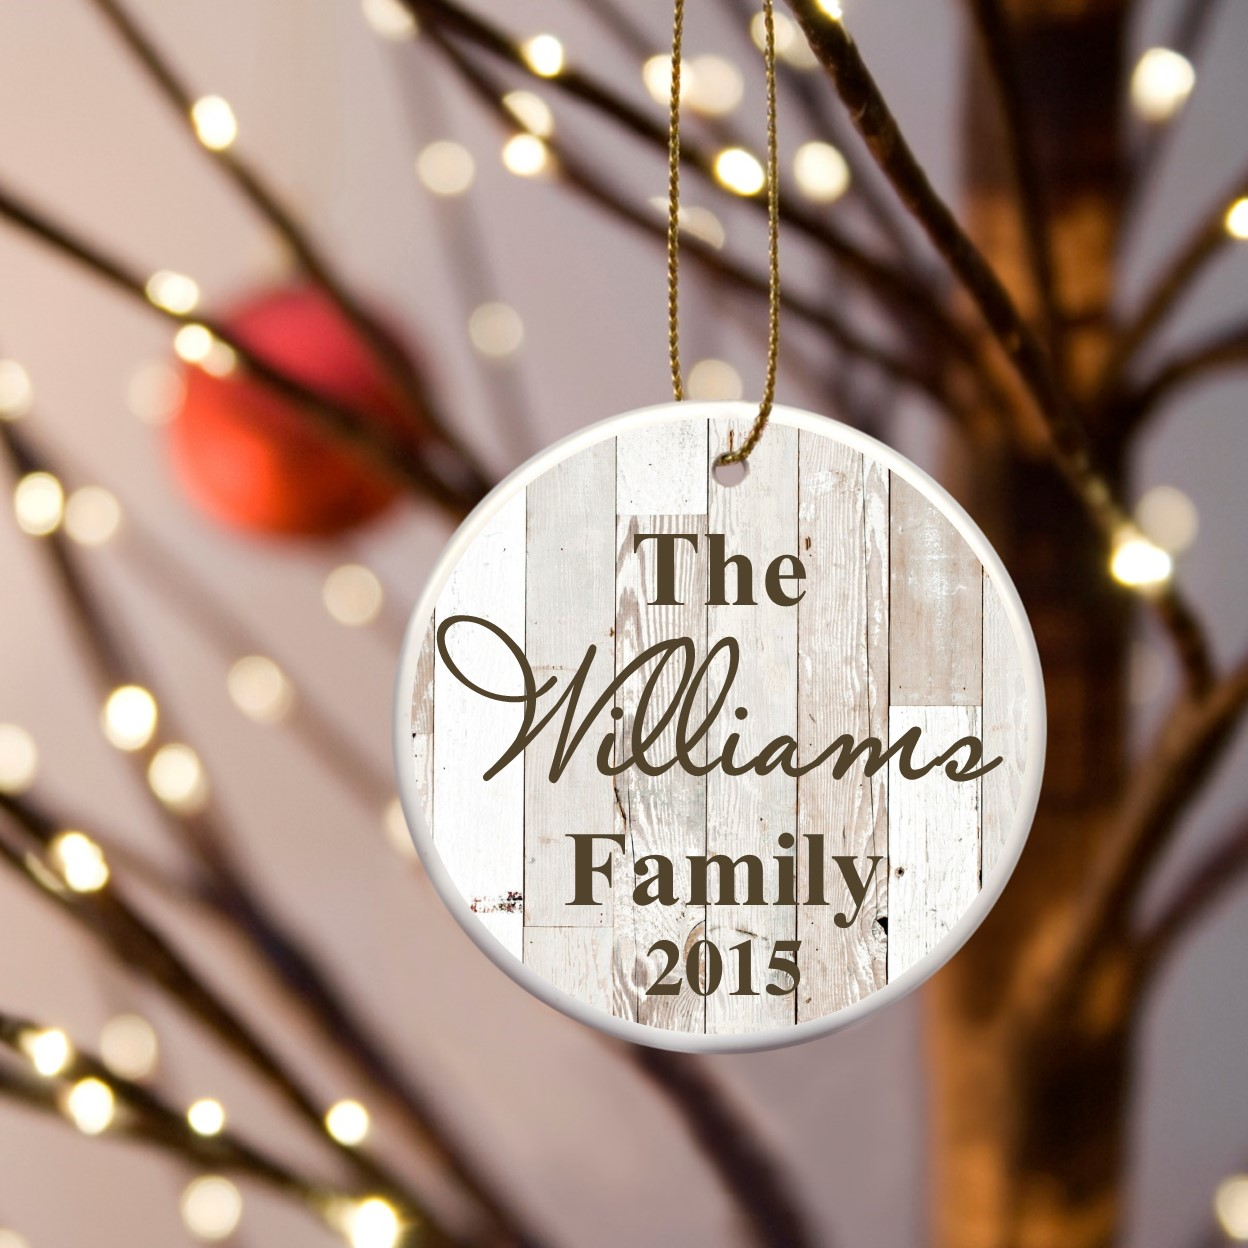 Personalized name ornaments - Personalized Family Name Ceramic Ornaments